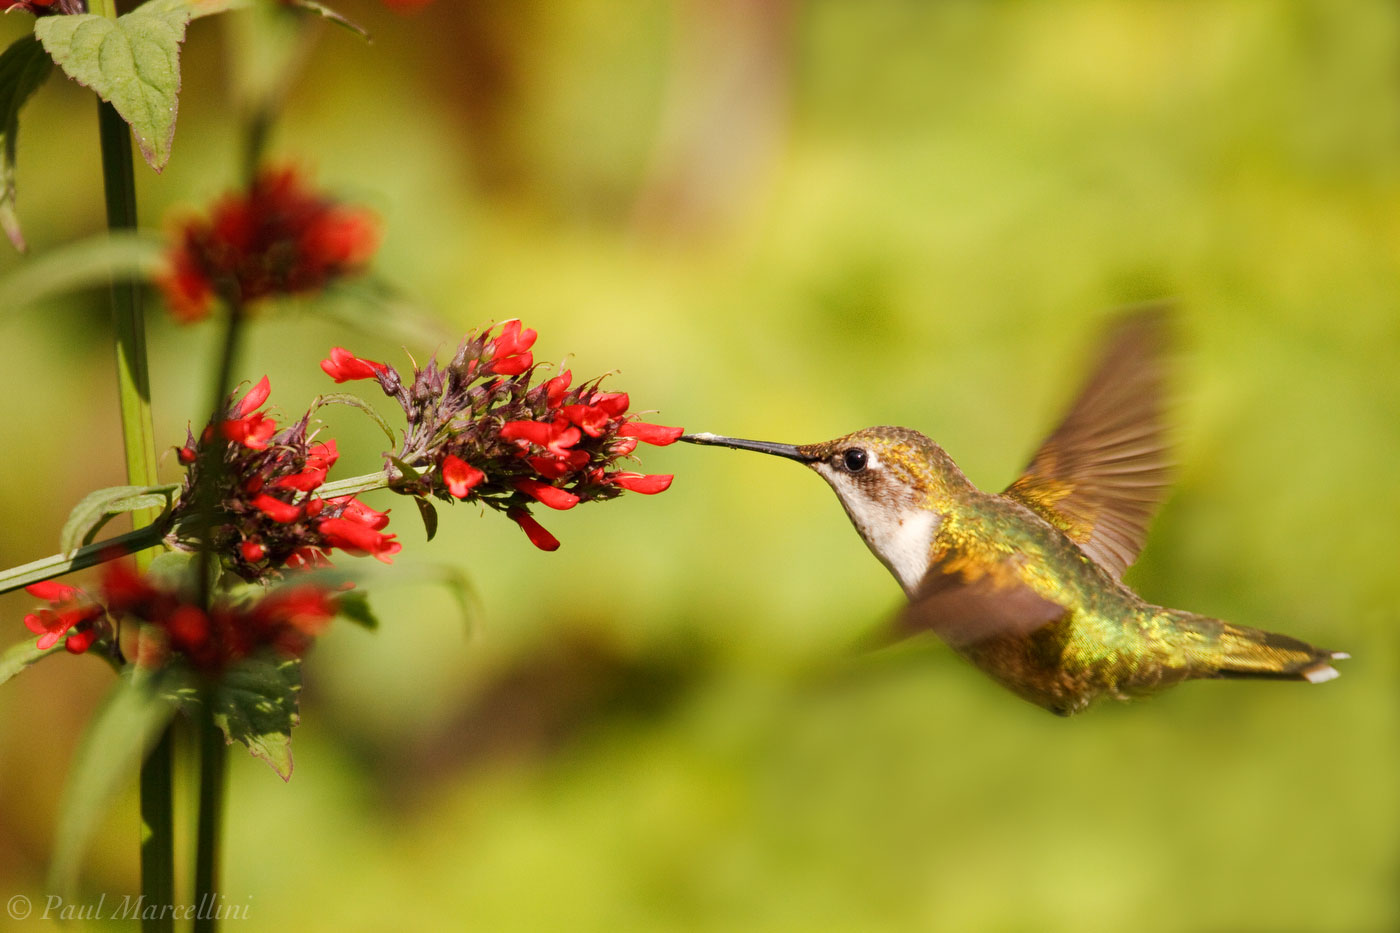 Ruby-throated Hummingbird, Archilochus colubris, photo